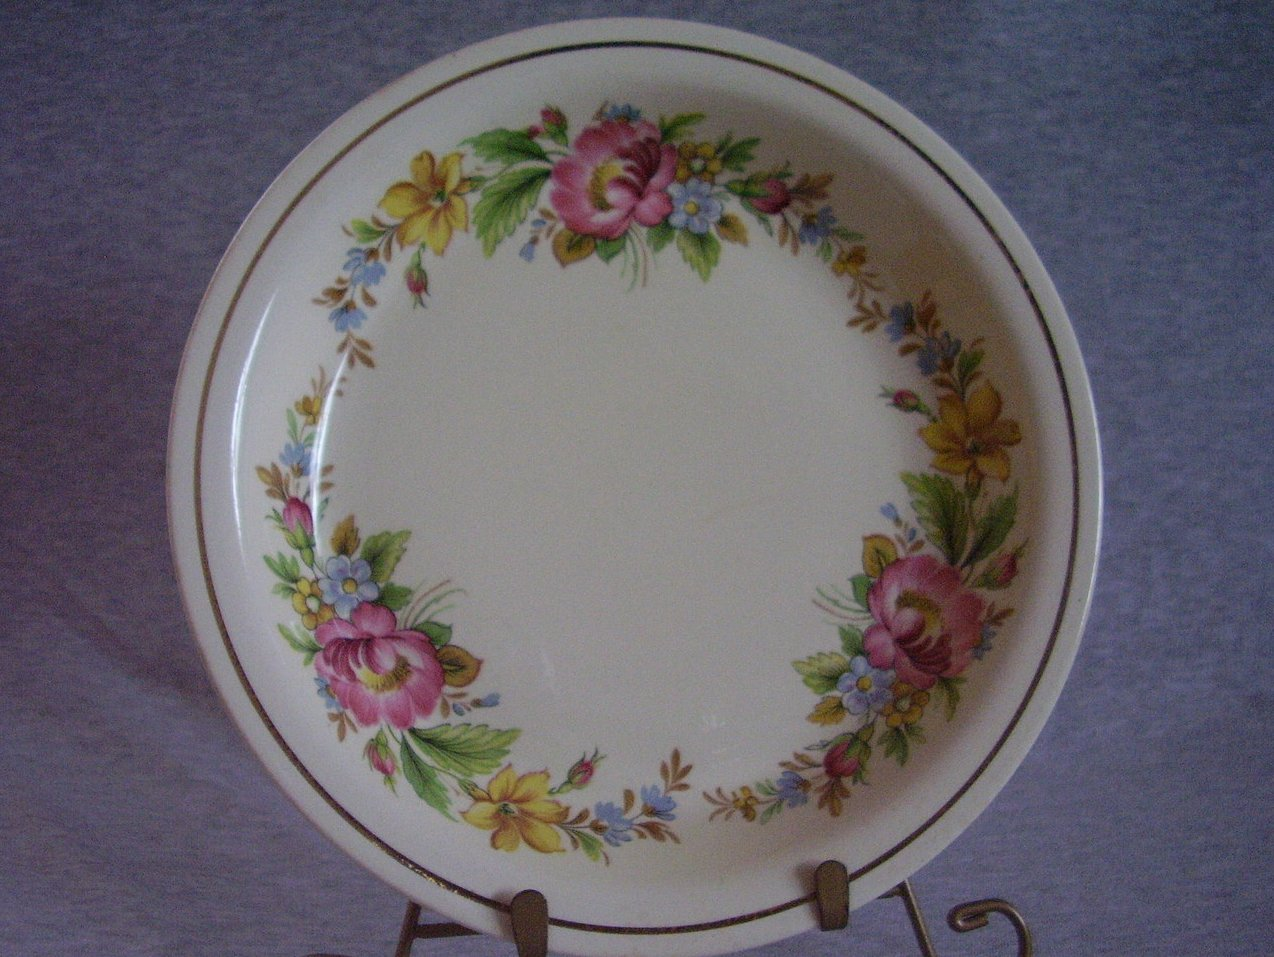 Kitchen Kraft Oven Serve Pie Plate